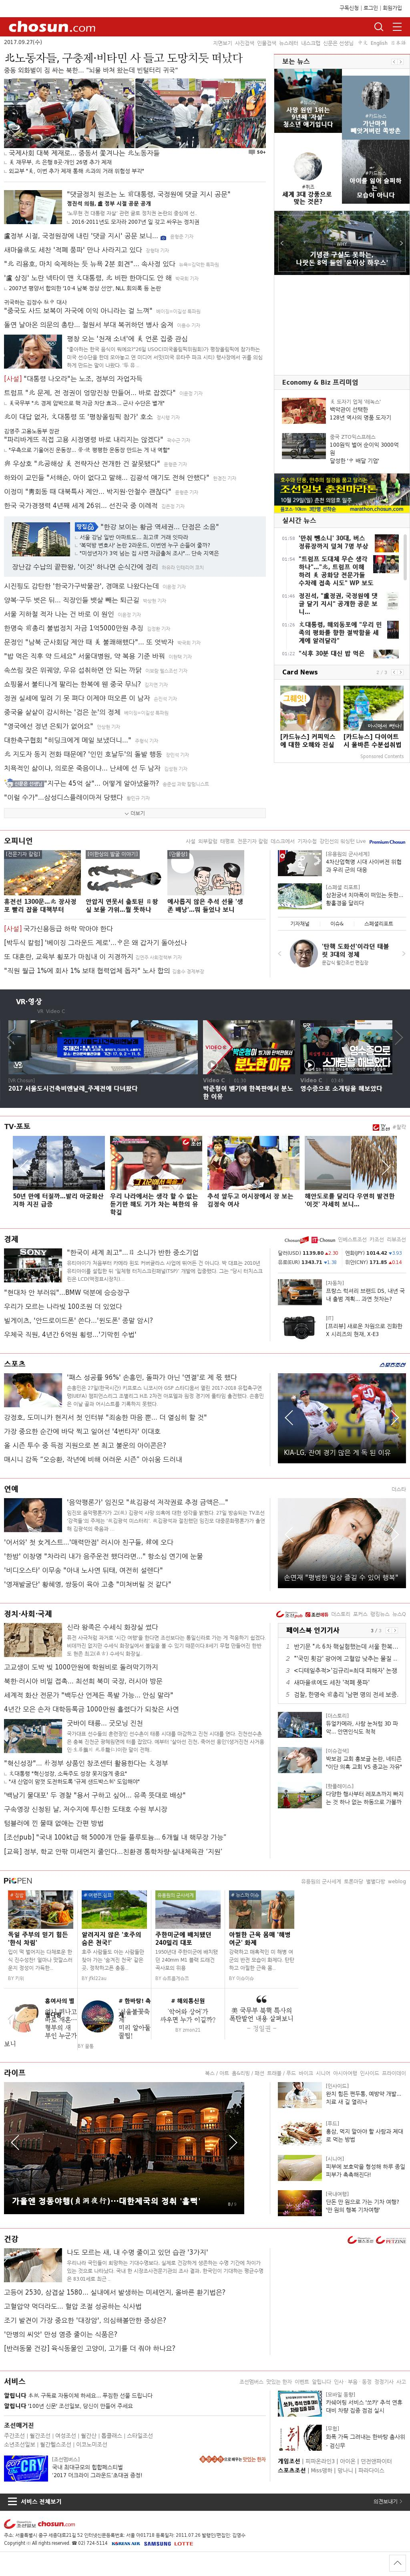 chosun.com at Wednesday Sept. 27, 2017, 2 a.m. UTC